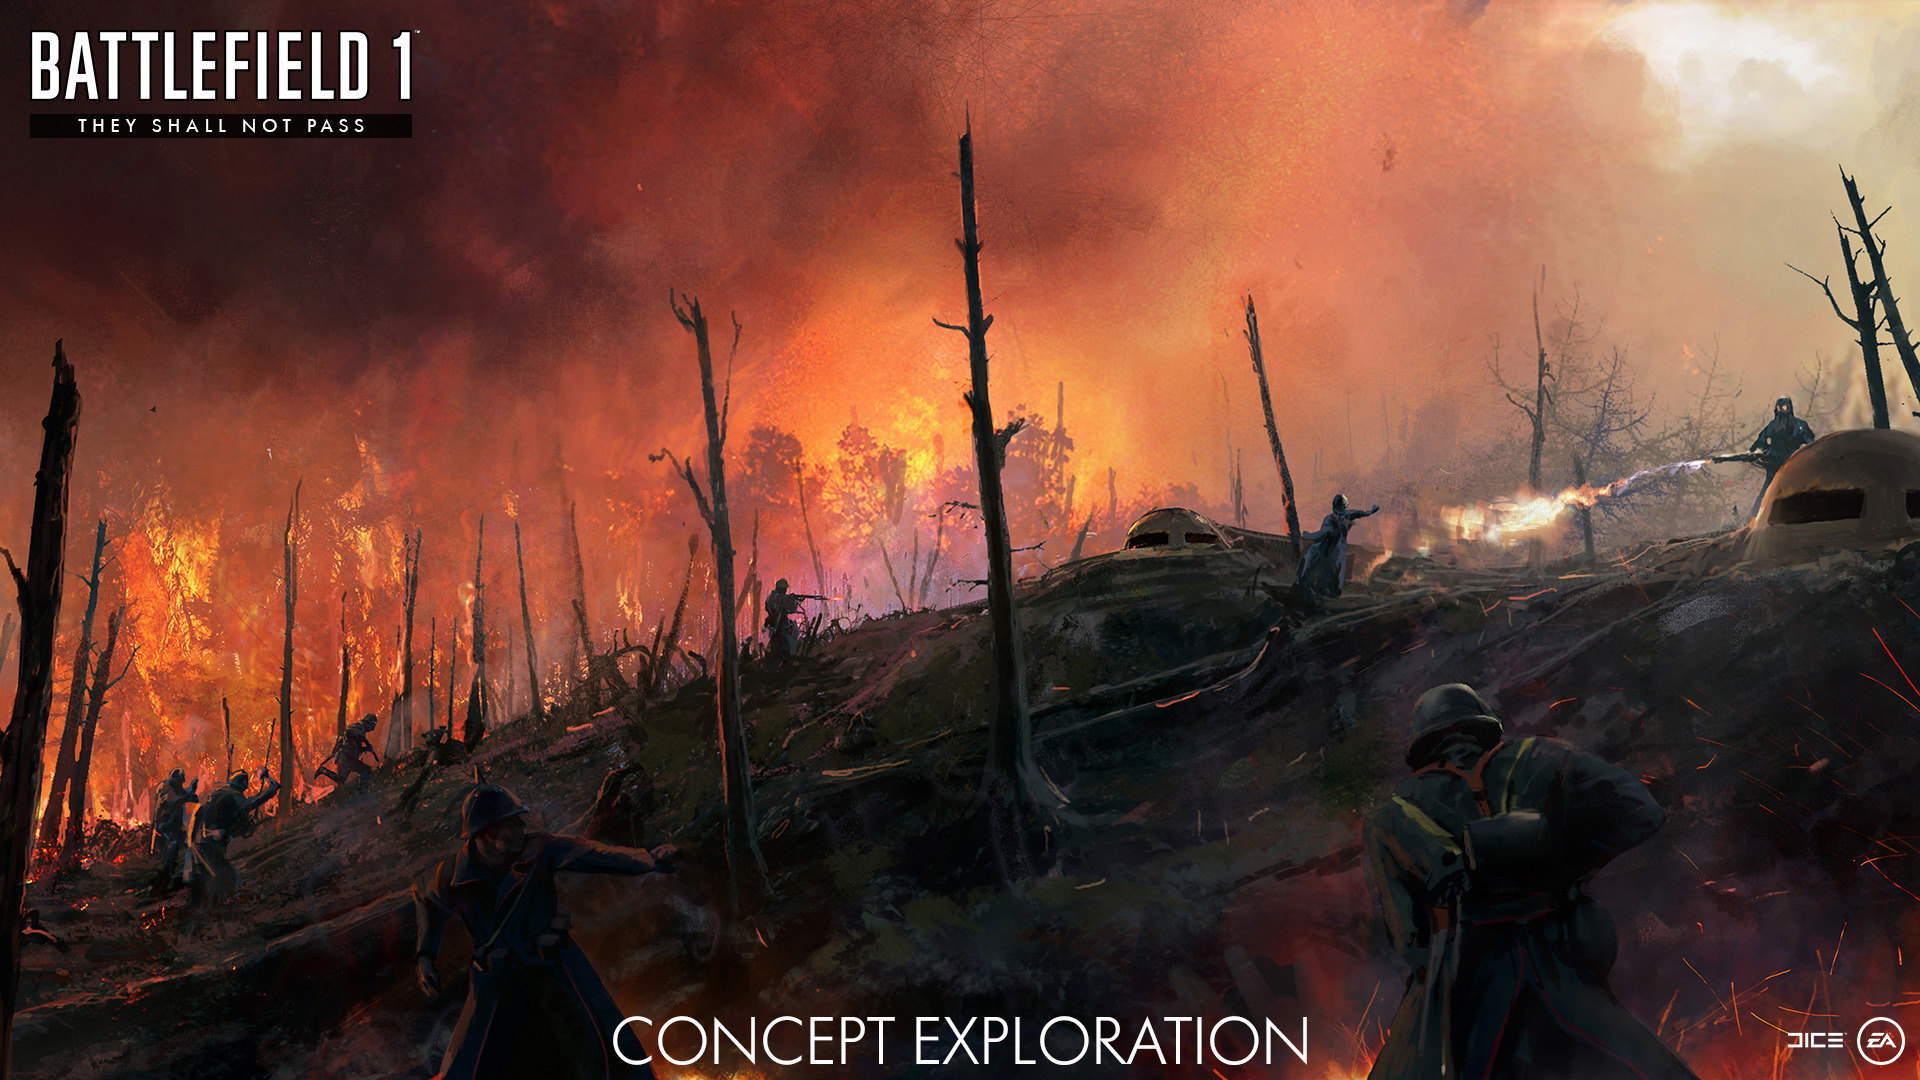 Get Your First Look At Battlefield 1's March Expansion They Shall Not Pass